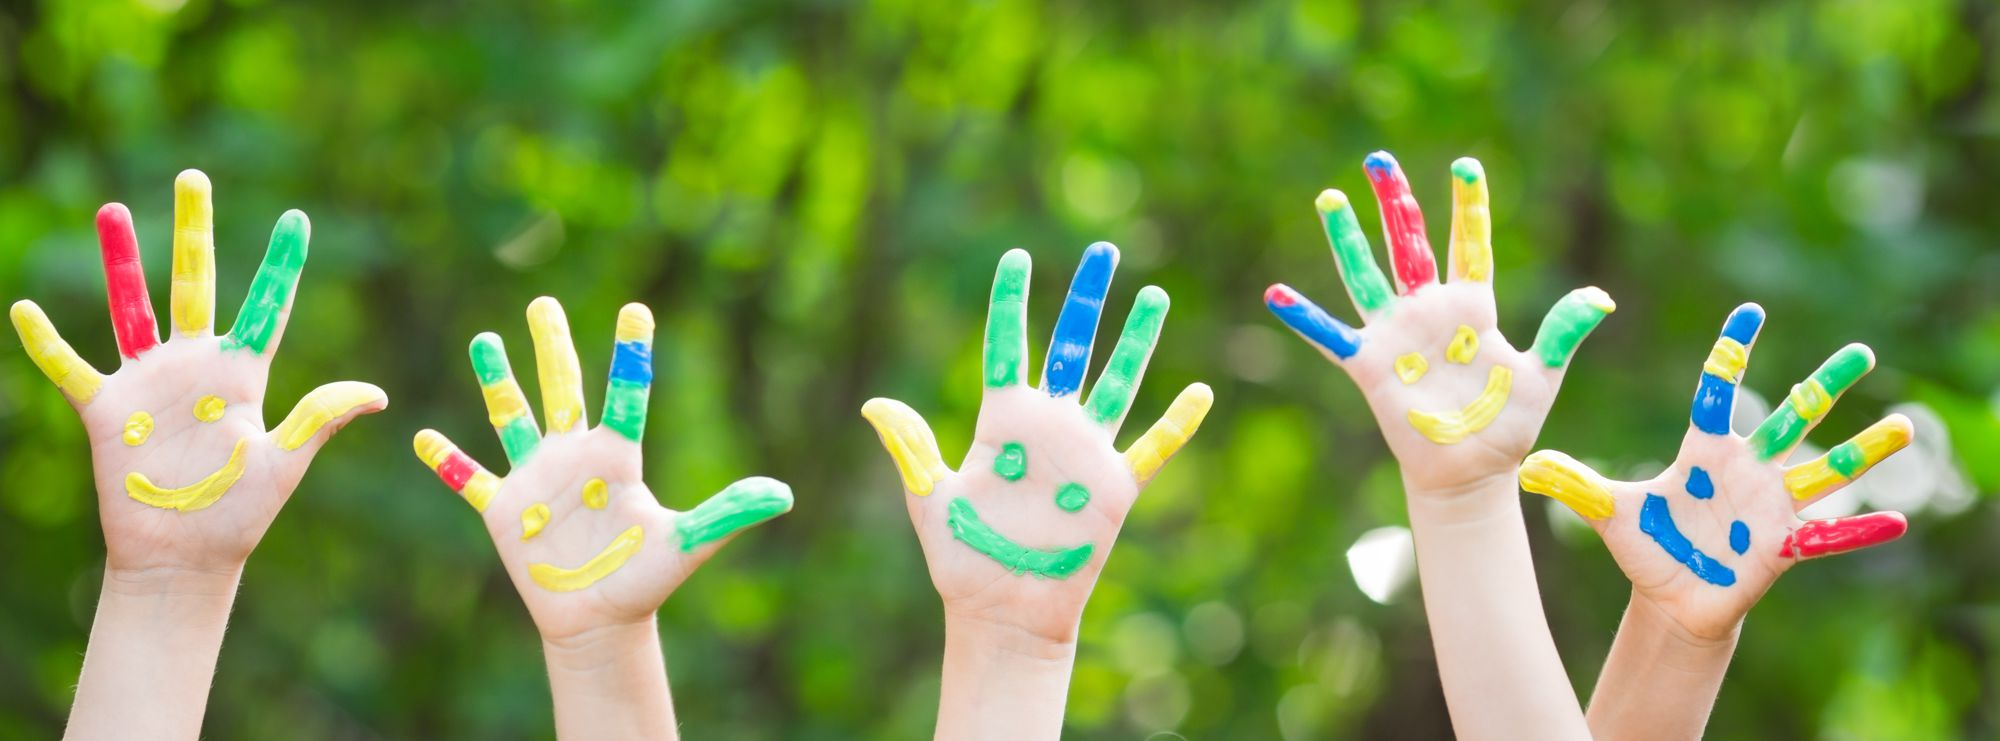 Kids painted hands